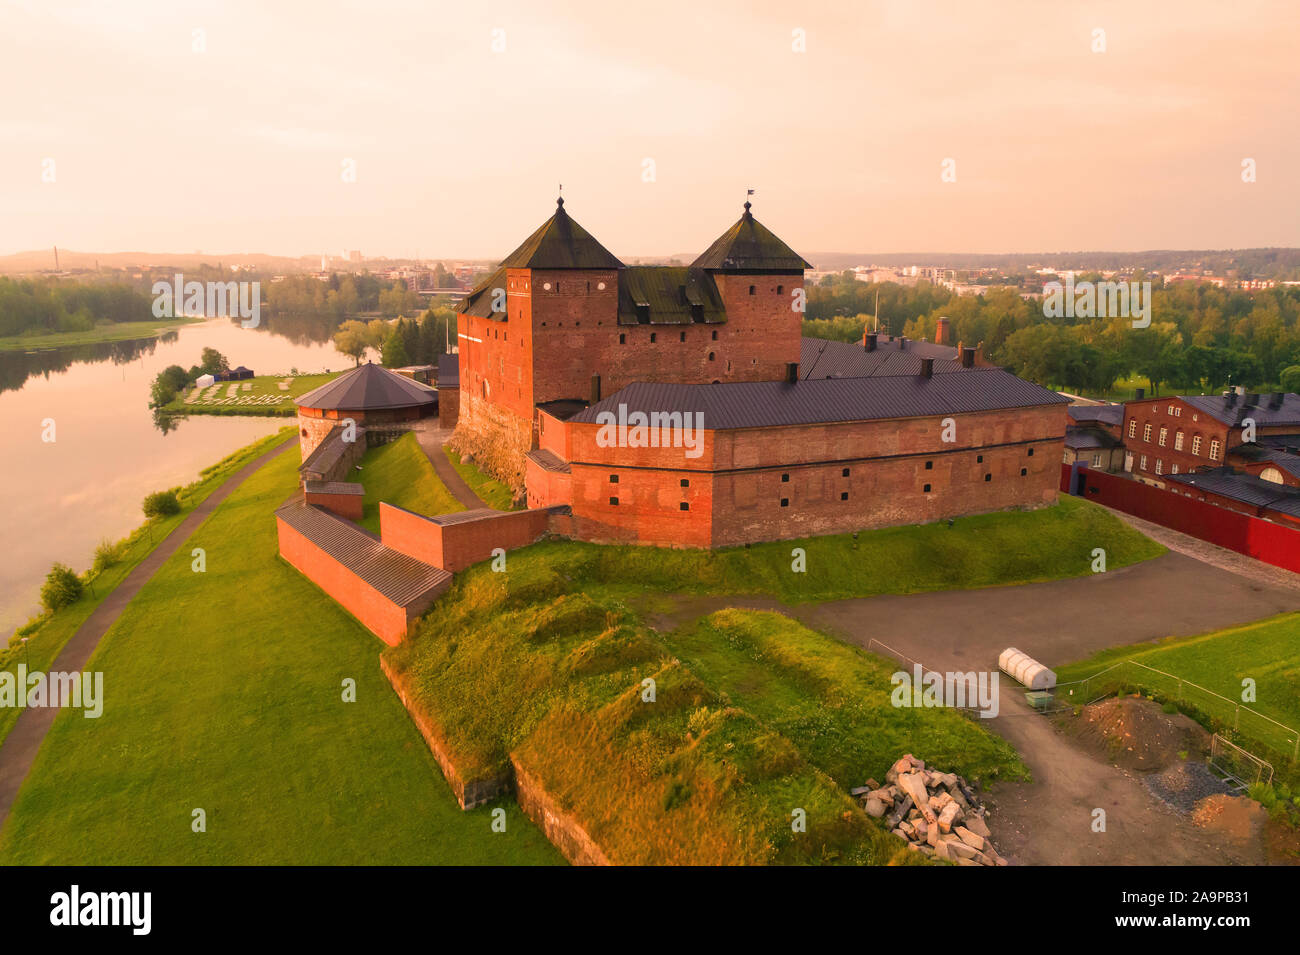 Ancient fortress against the backdrop of the cityscape on a dawn (shooting from a quadrocopter). Hameenlinna, Finland Stock Photo